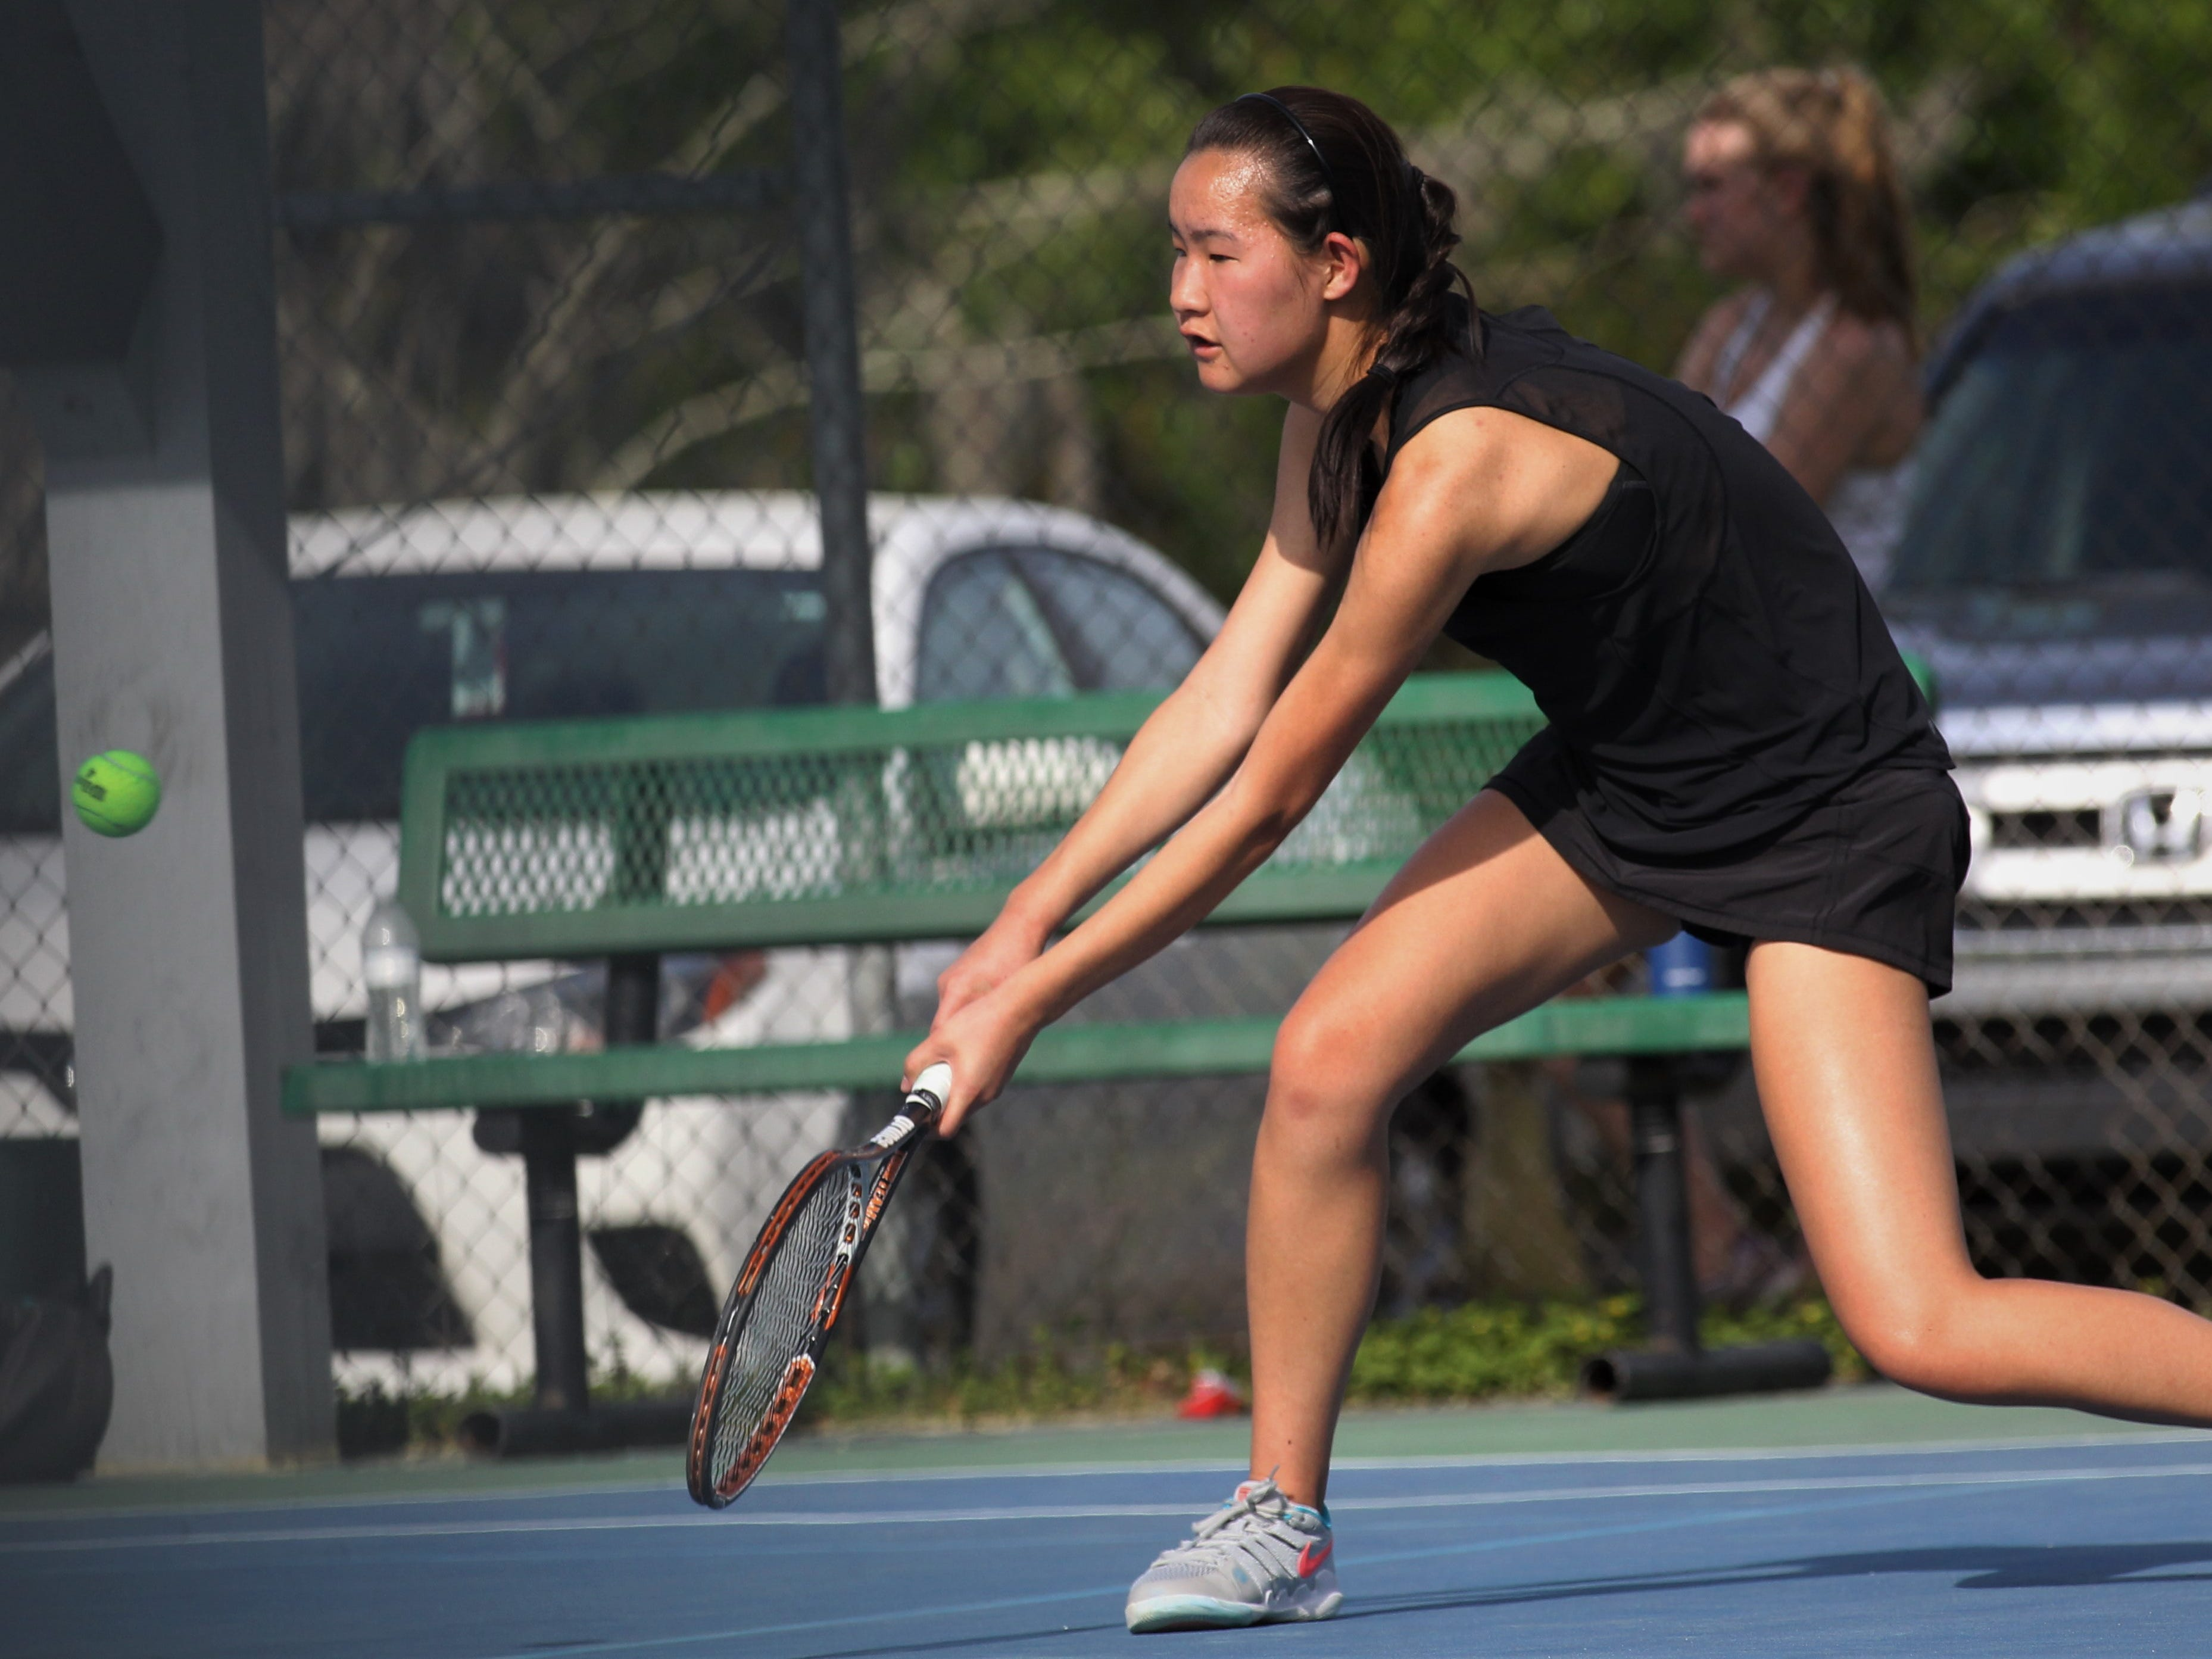 Chiles senior Amy Xia plays during the boys and girls tennis city tournament at Tom Brown Park on March 13, 2019.